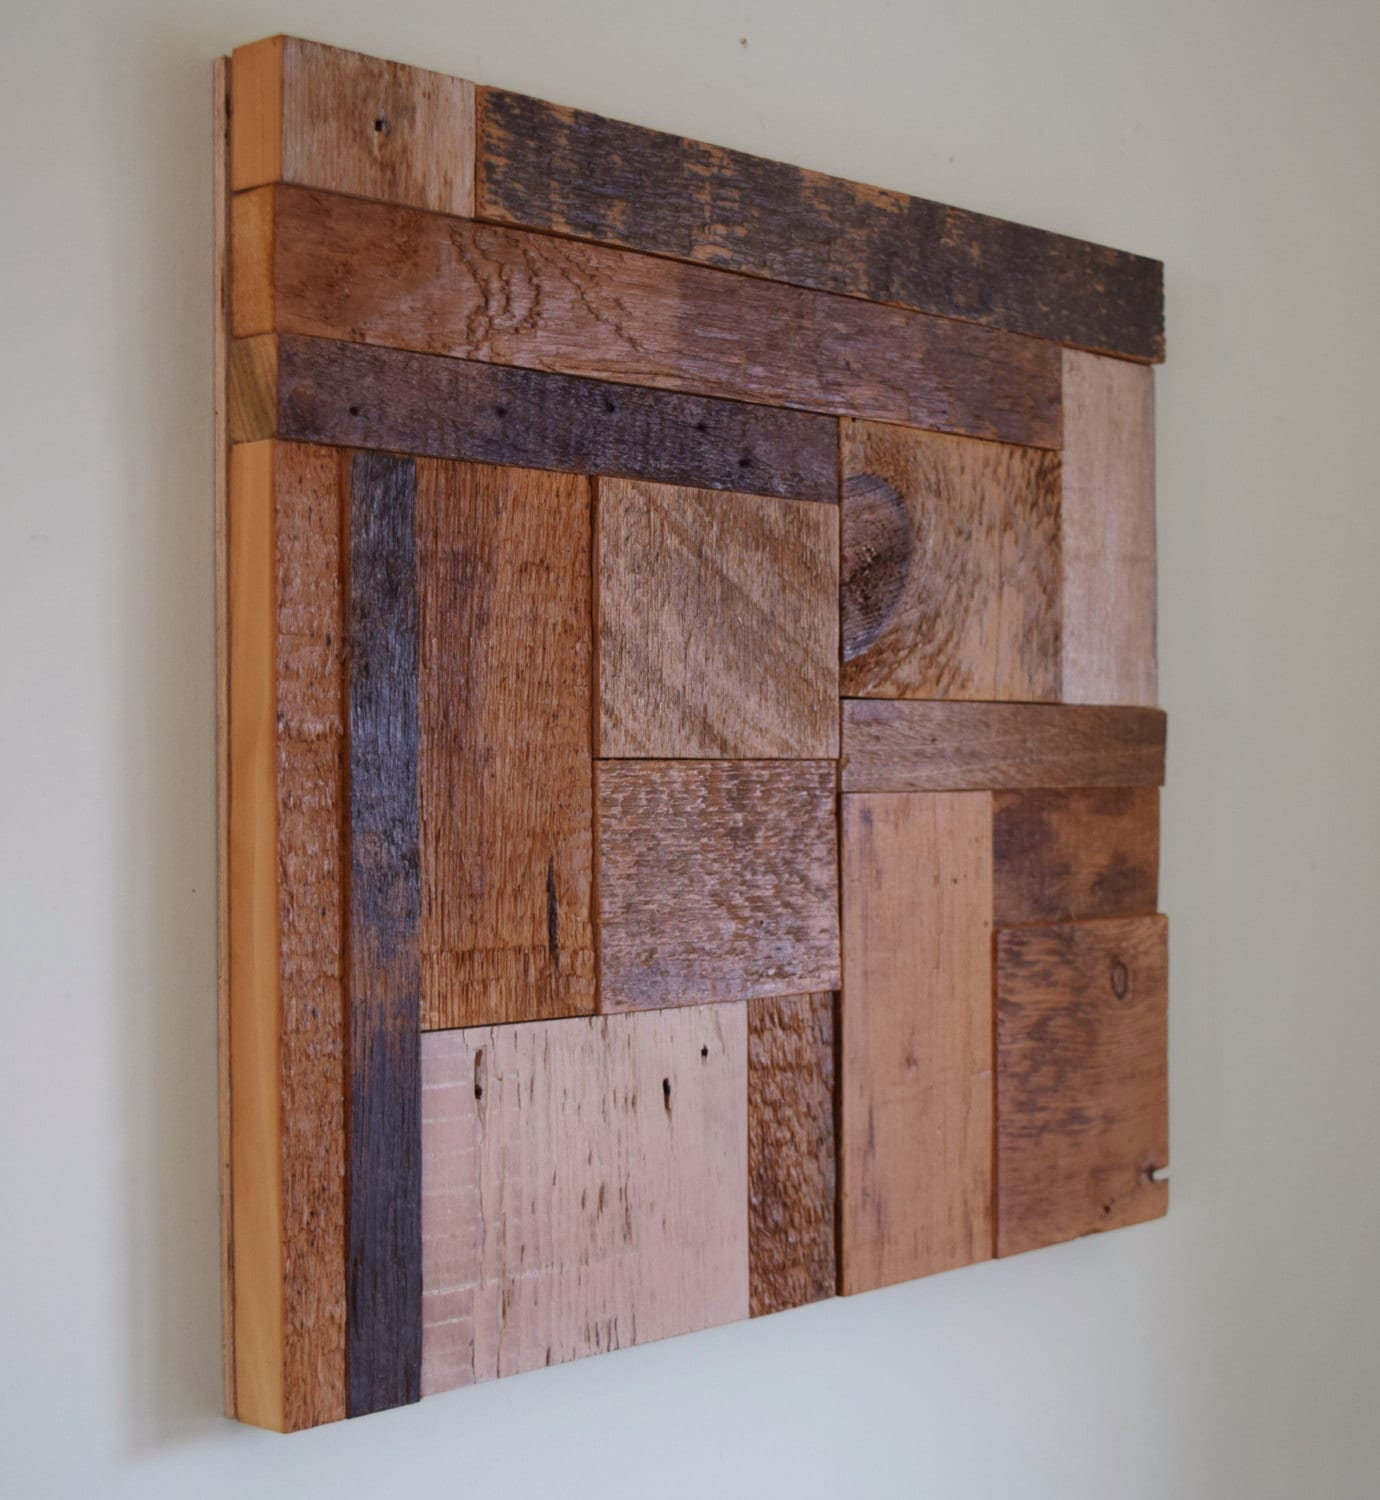 Rustic Barn Wood Wall Art From Reclaimed Old 1800s Barn Wood